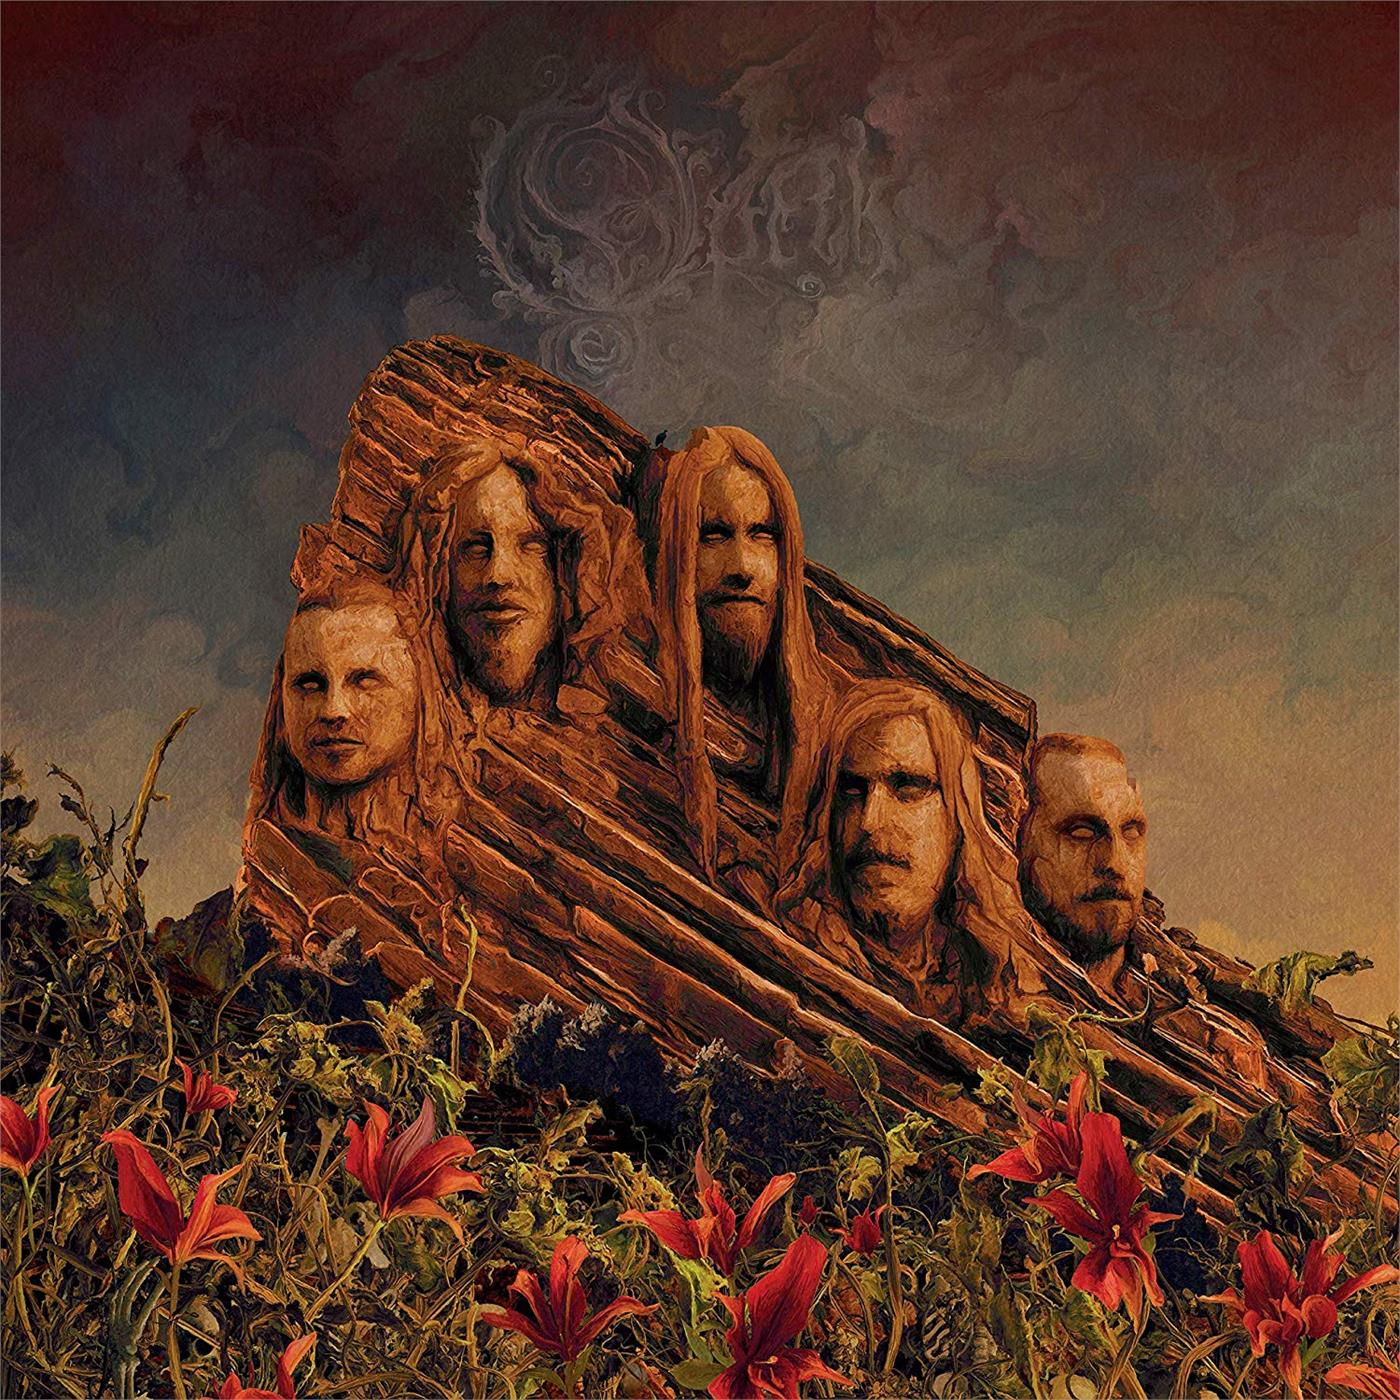 Opeth - Garden of Titans [2xLP]